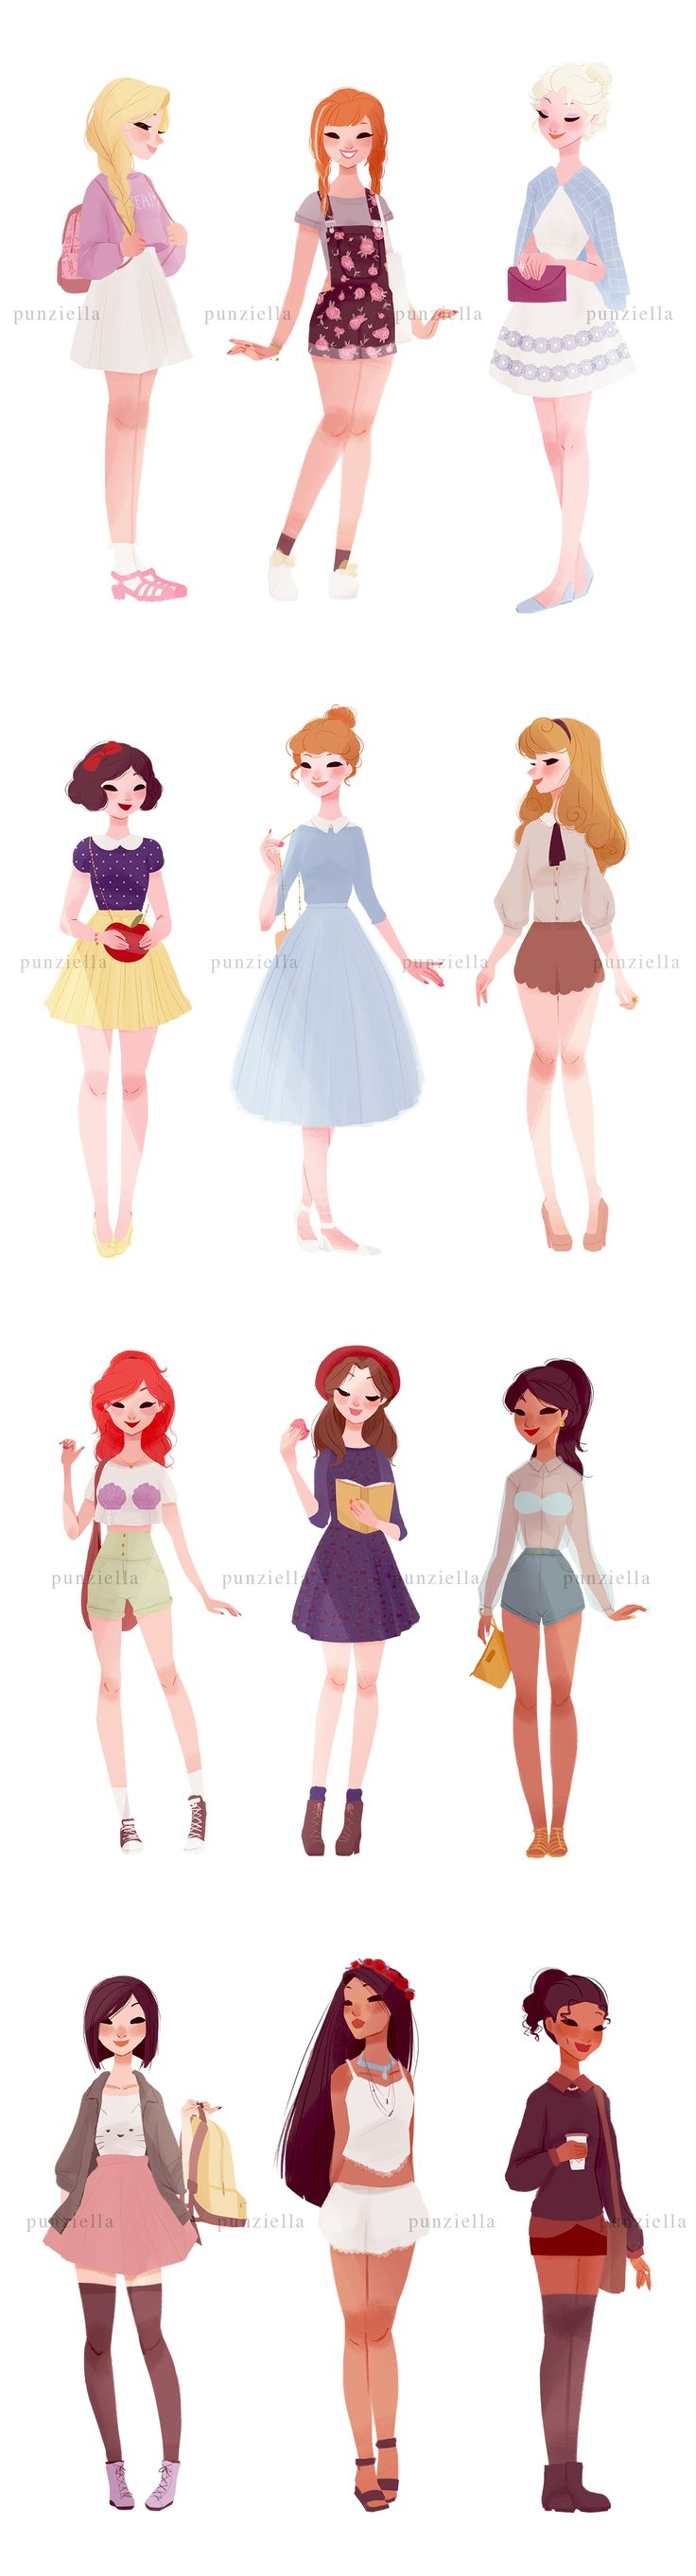 Princesses I'd wear all those outfits!.. Except for Jasmine's. It's a bit revealing.